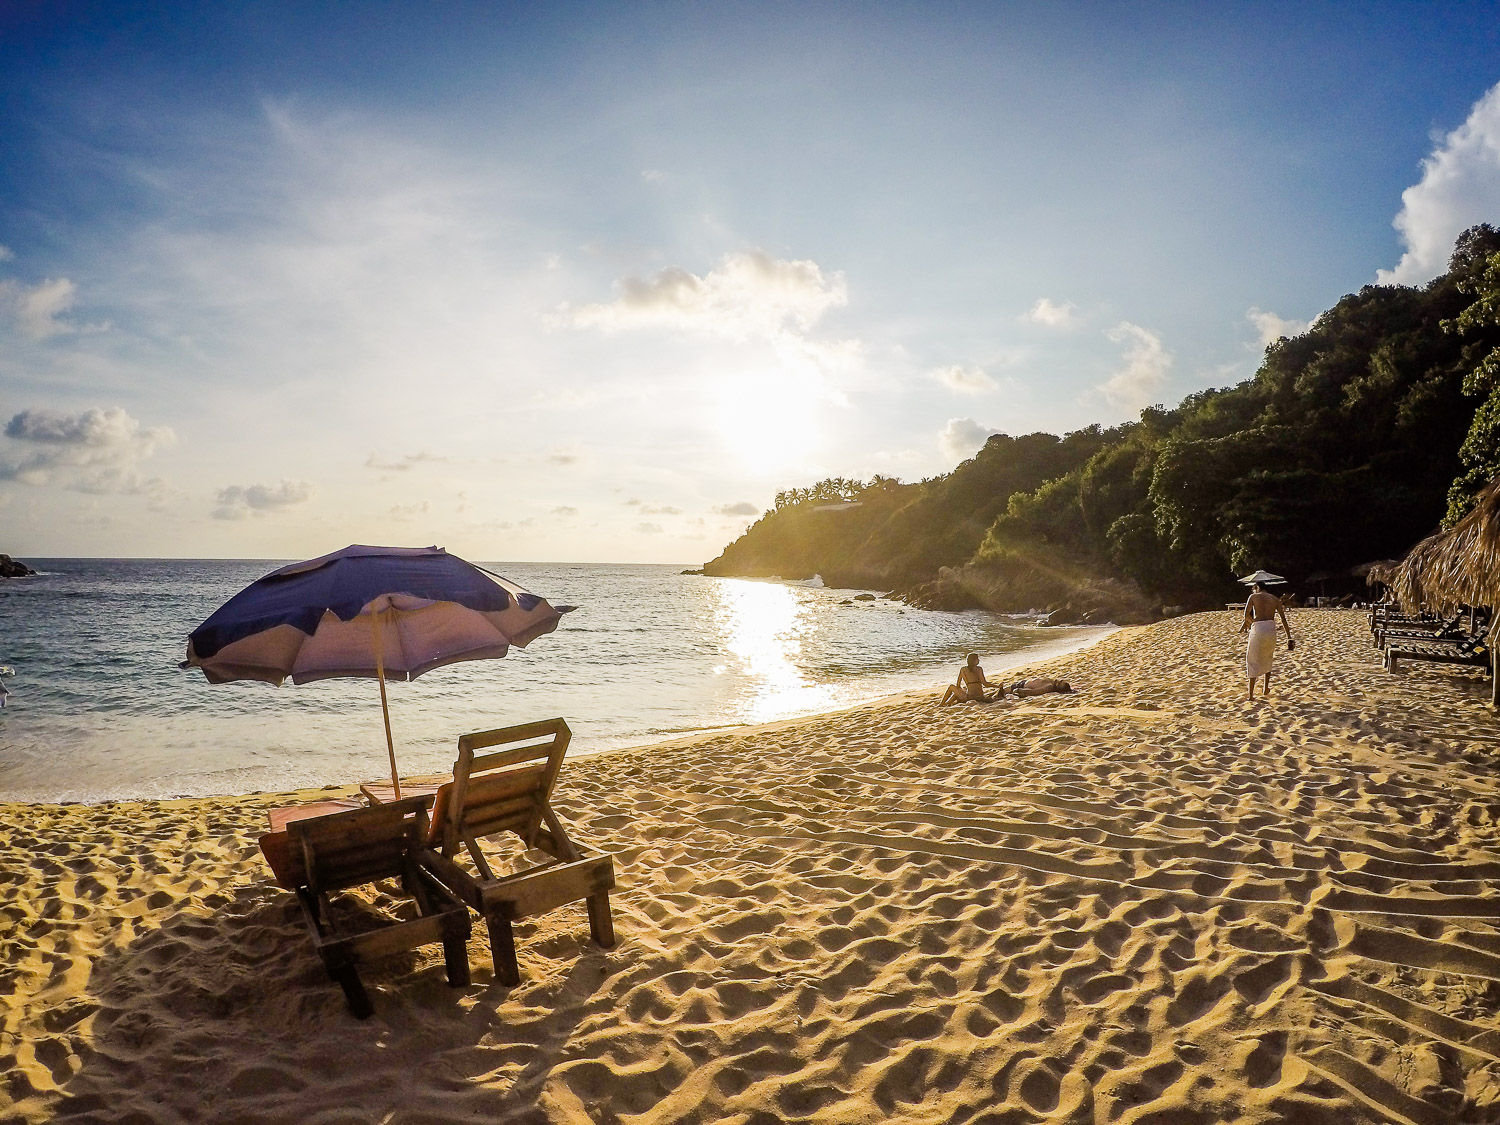 beach with chairs and umbrella - how to choose your next travel photography destination